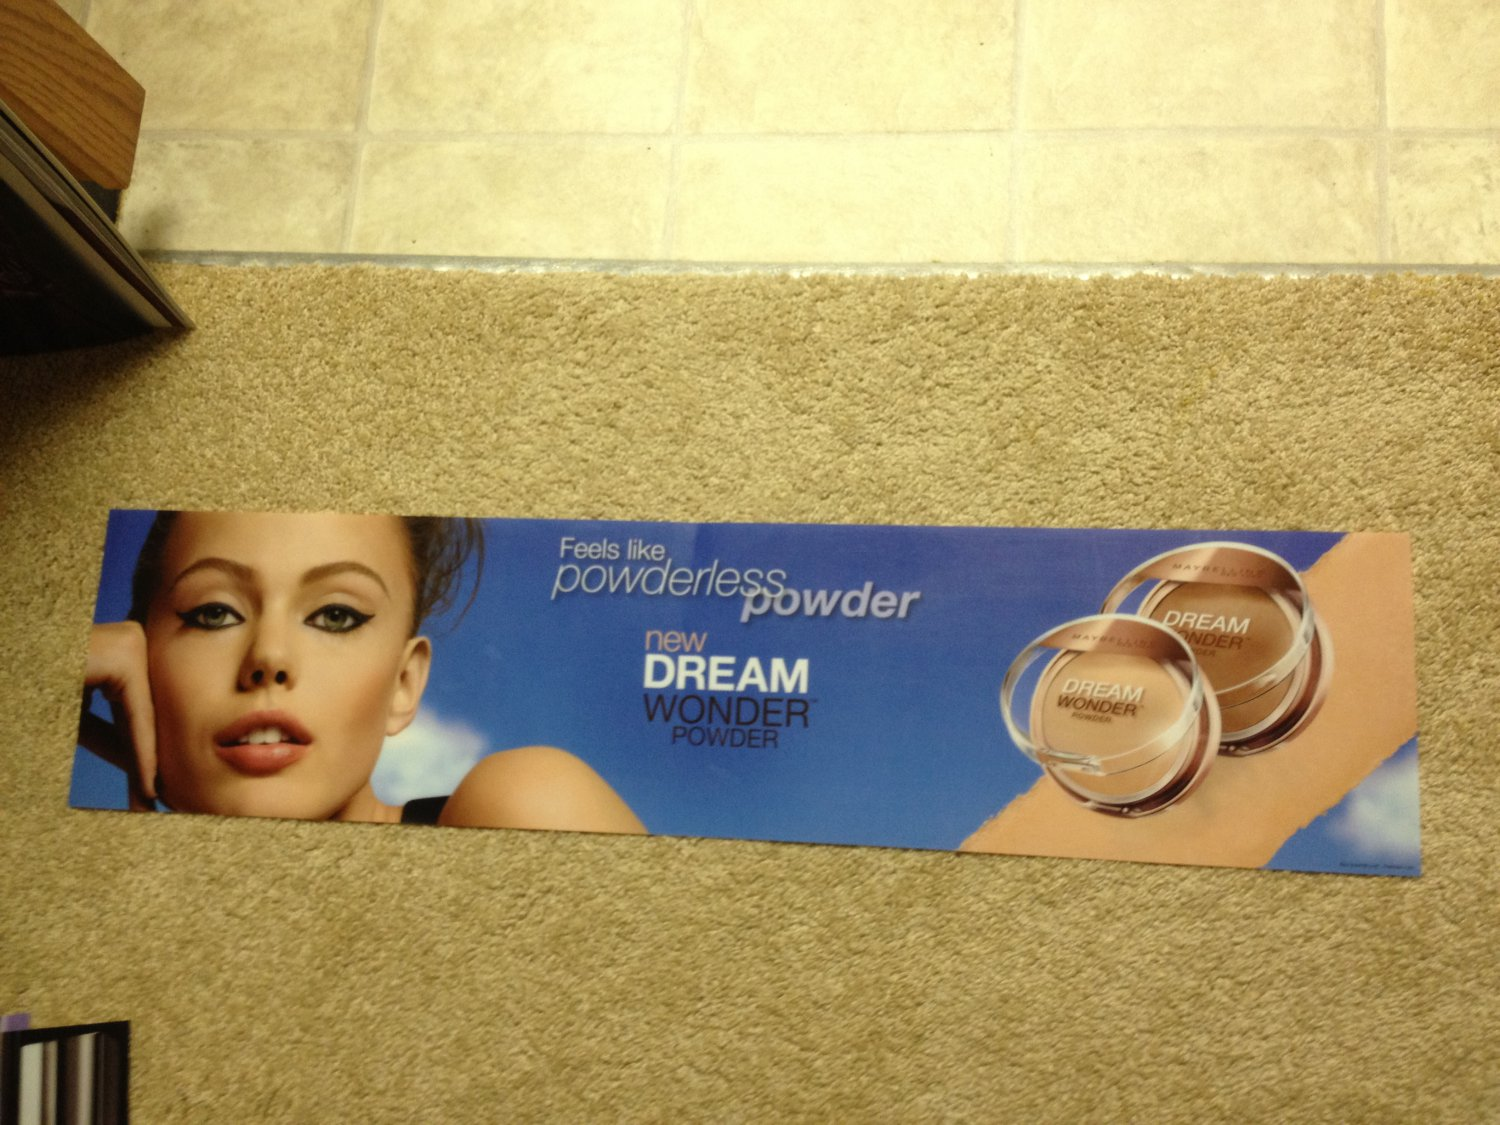 Maybelline Dream Wonder Powder Foundation face Product Display Poster